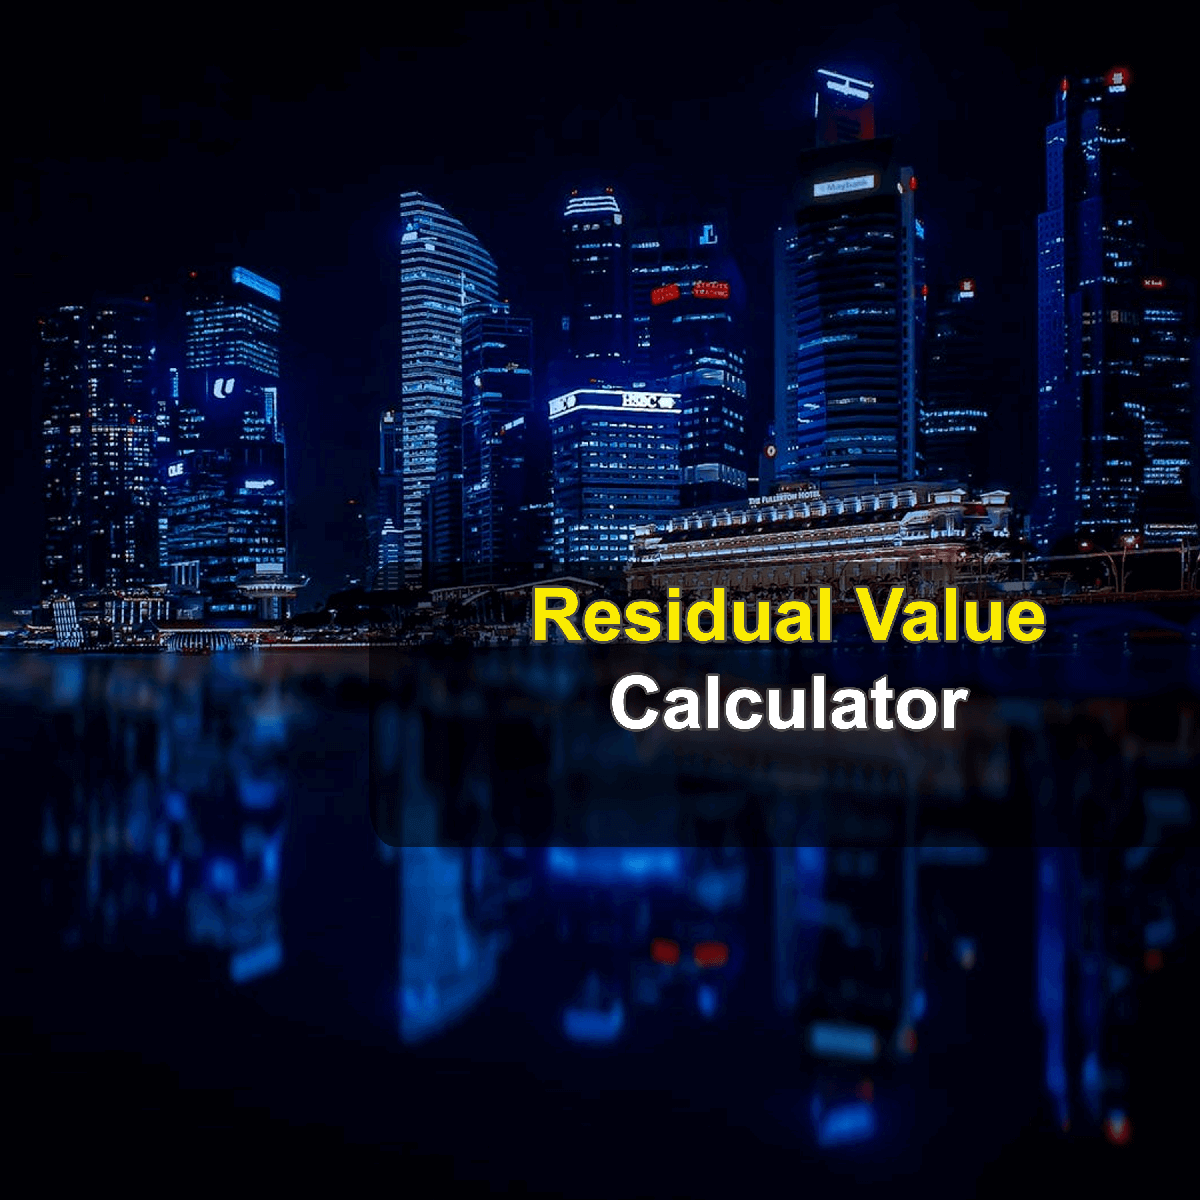 Residual Value Calculator. This image provides details of how to calculate the residual value of an asset. By using the residual value formula, the Residual Value Calculator provides a true calculation of your asset's value after it has served its useful life.